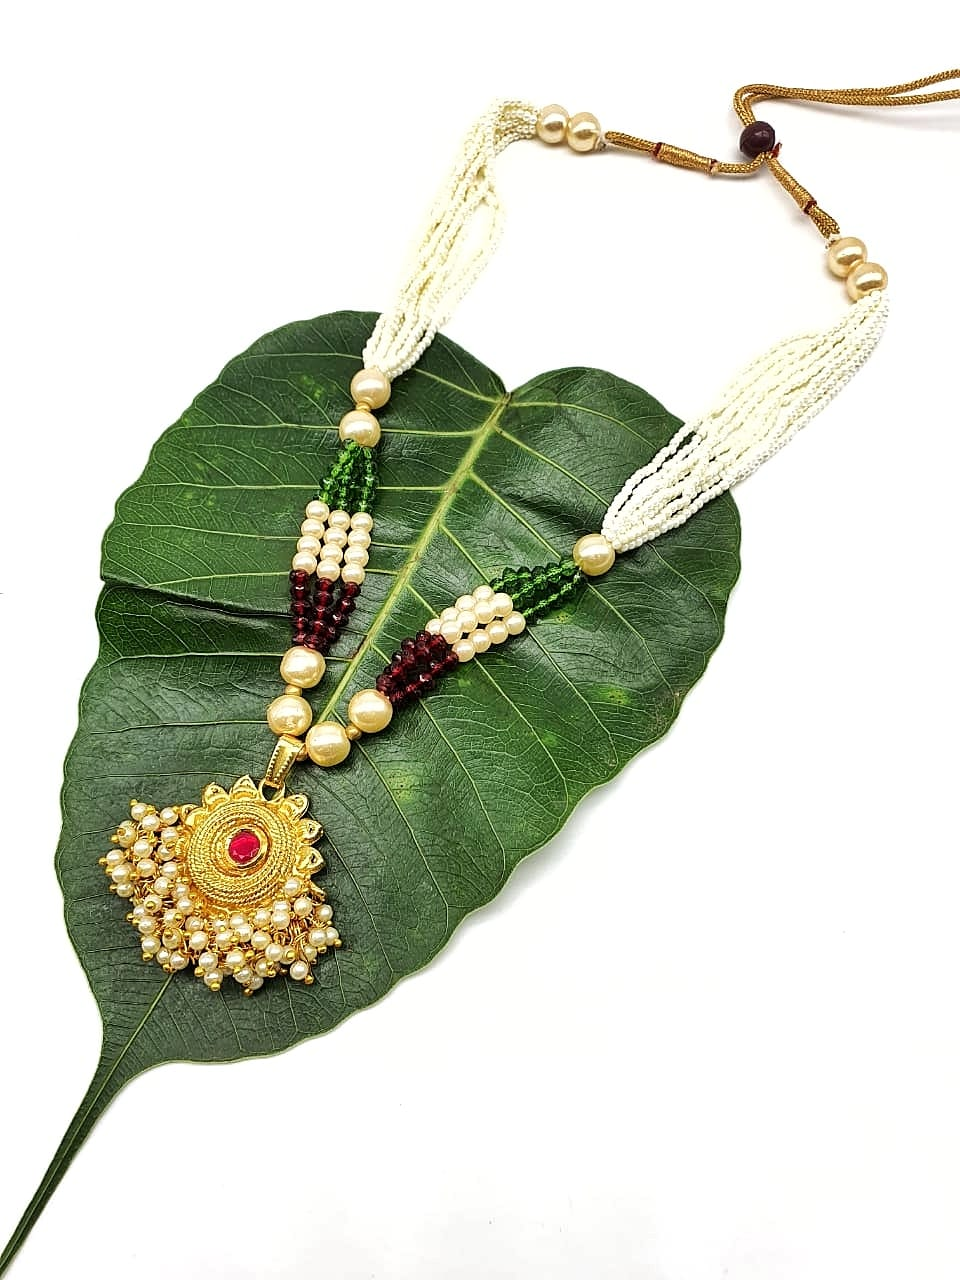 Gold Plated Necklace with Designer Pendant Pink Stone Multicolor White Pearl Bead Mala Necklace - DigitalDressRoom